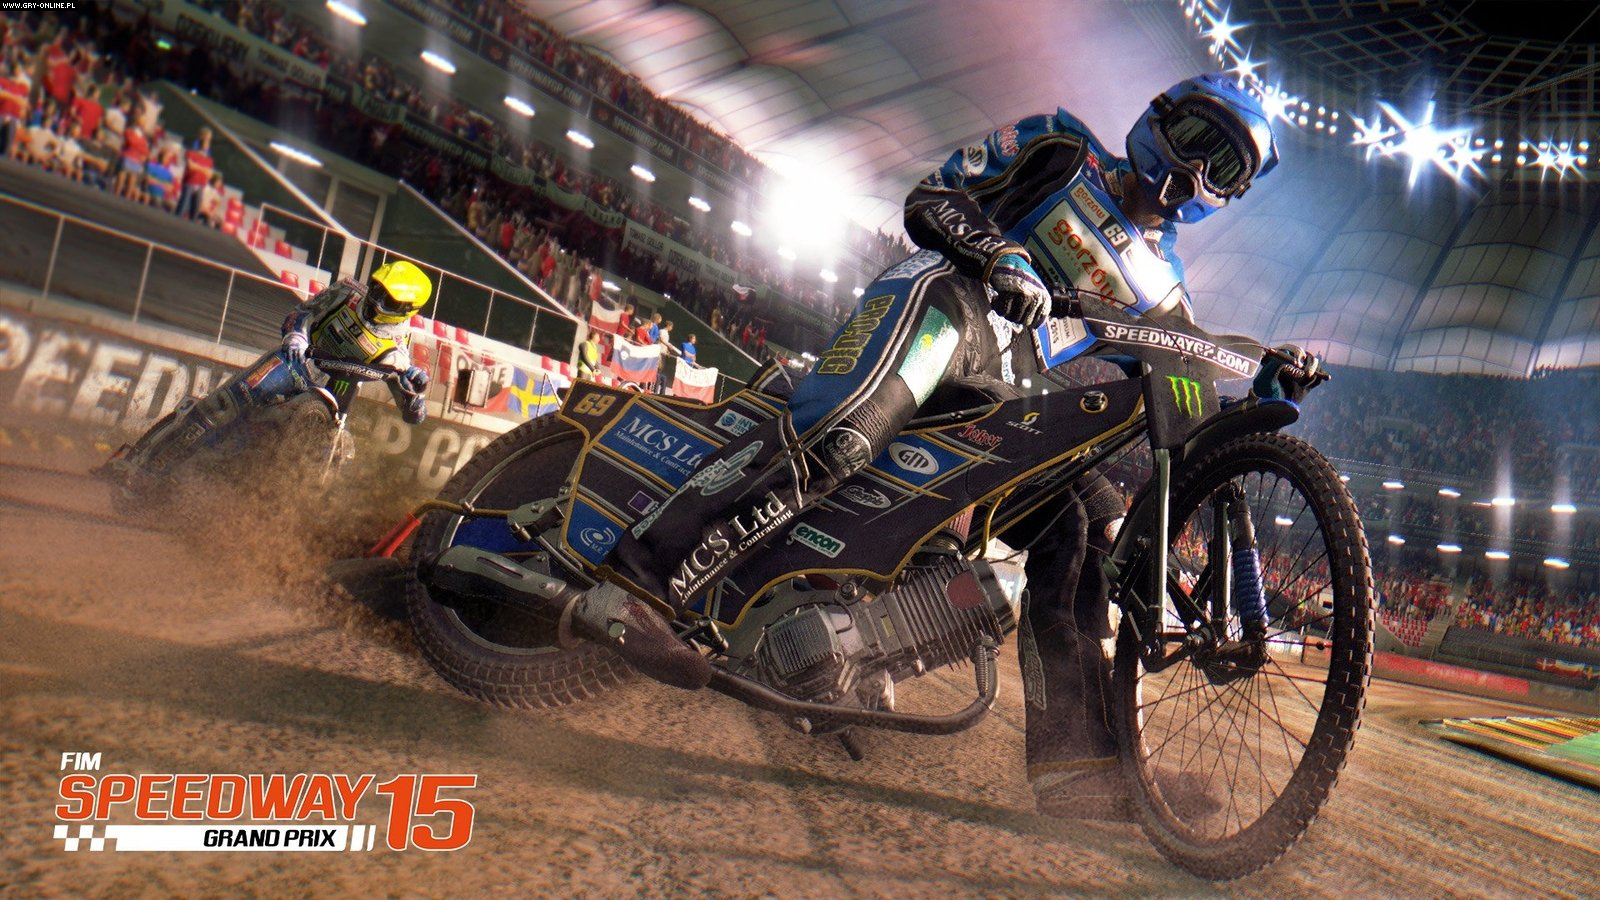 FIM Speedway Grand Prix 15 PC Gry Screen 2/10, Techland, Excalibur Publishing Limited